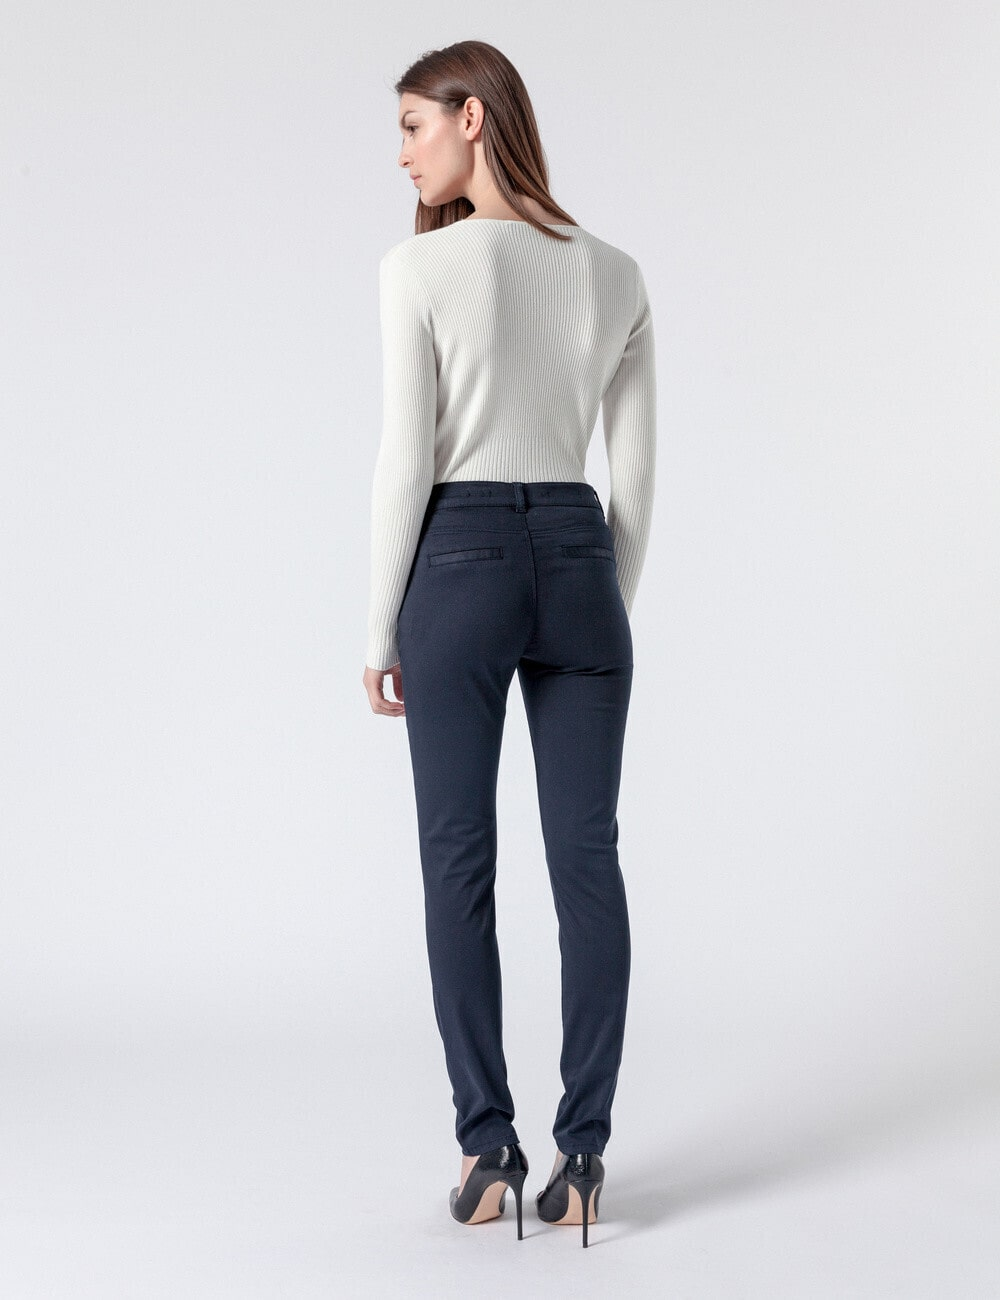 Jean Paris : Slim